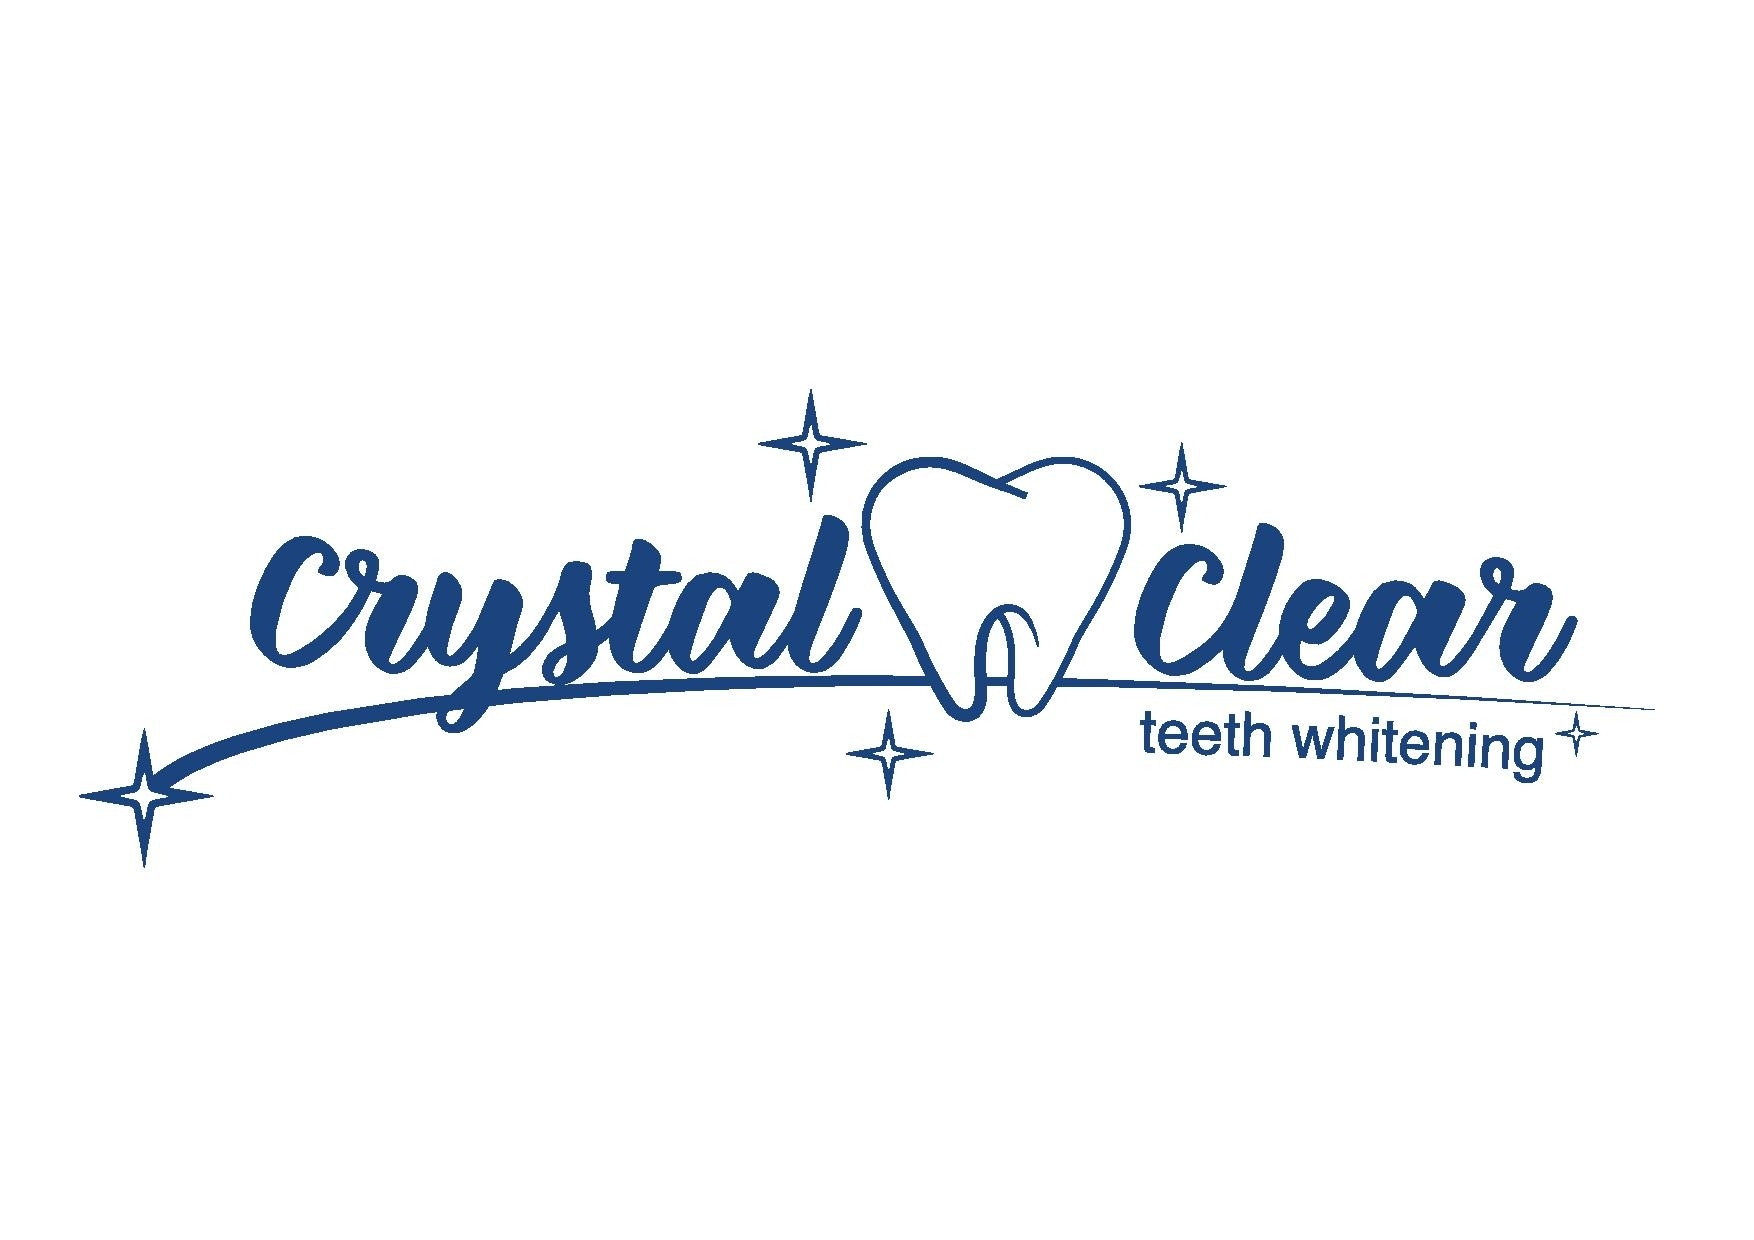 More Crystal Clear Teeth Whitening deals